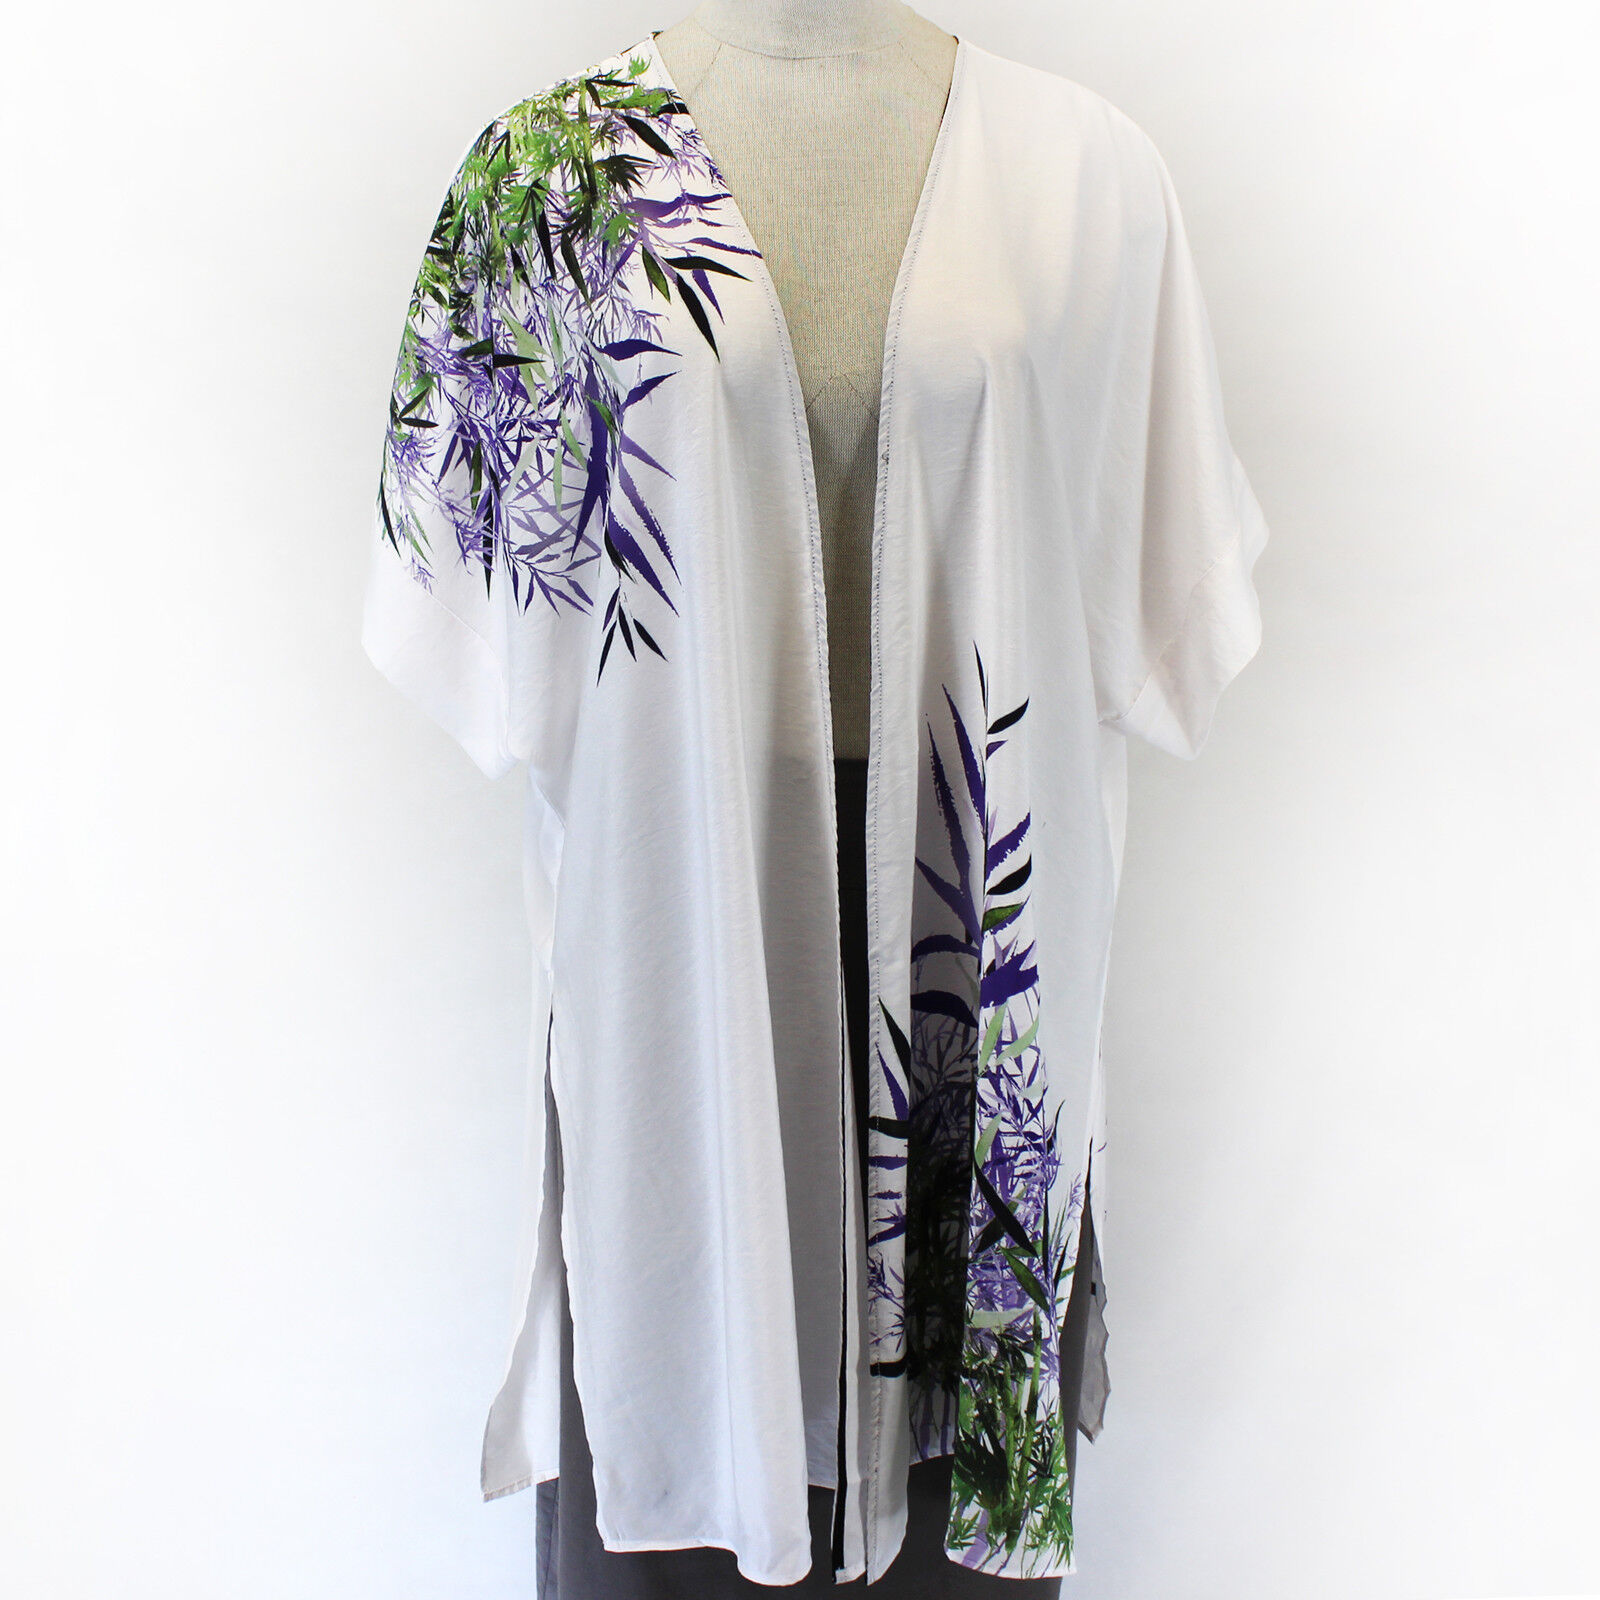 Citron Clothing Japanese Art Lavender Bamboo Blouse Tops Kimono Plus 1X